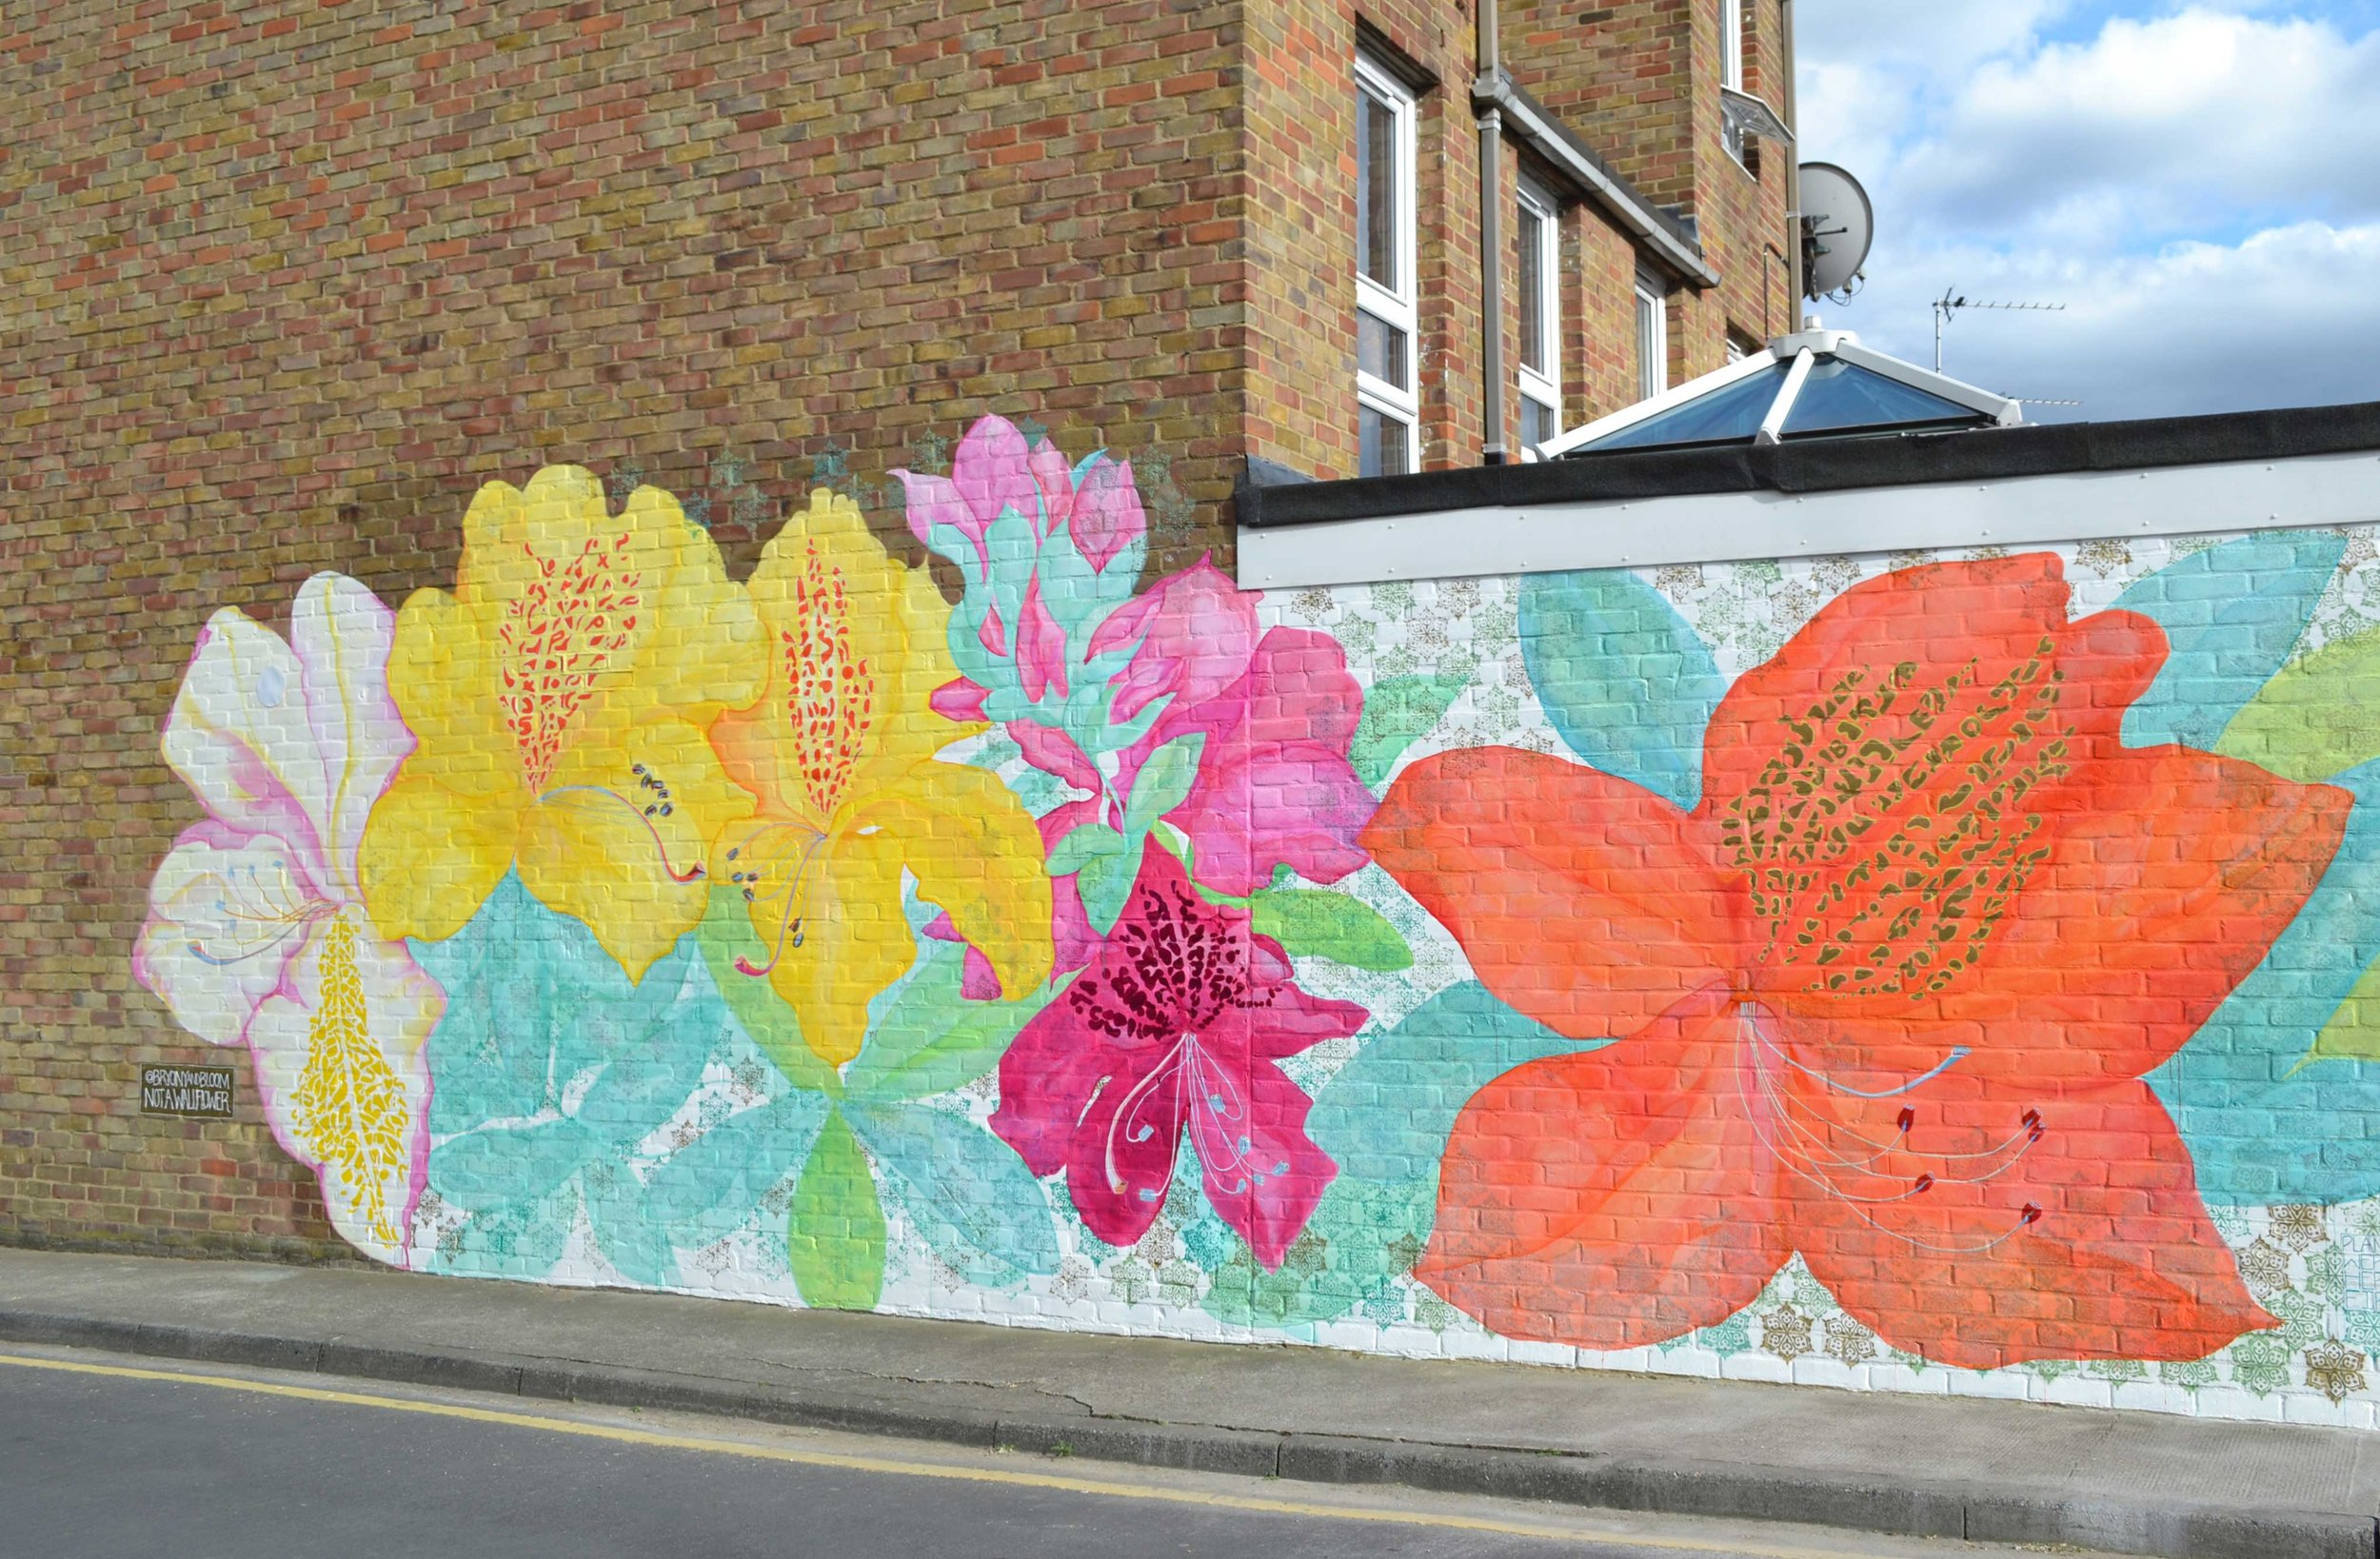 Not a wallflower - A vibrant mural in South East London inspired by Indian plants and patterns. Read about this commission here or alternatively watch the two short films below.